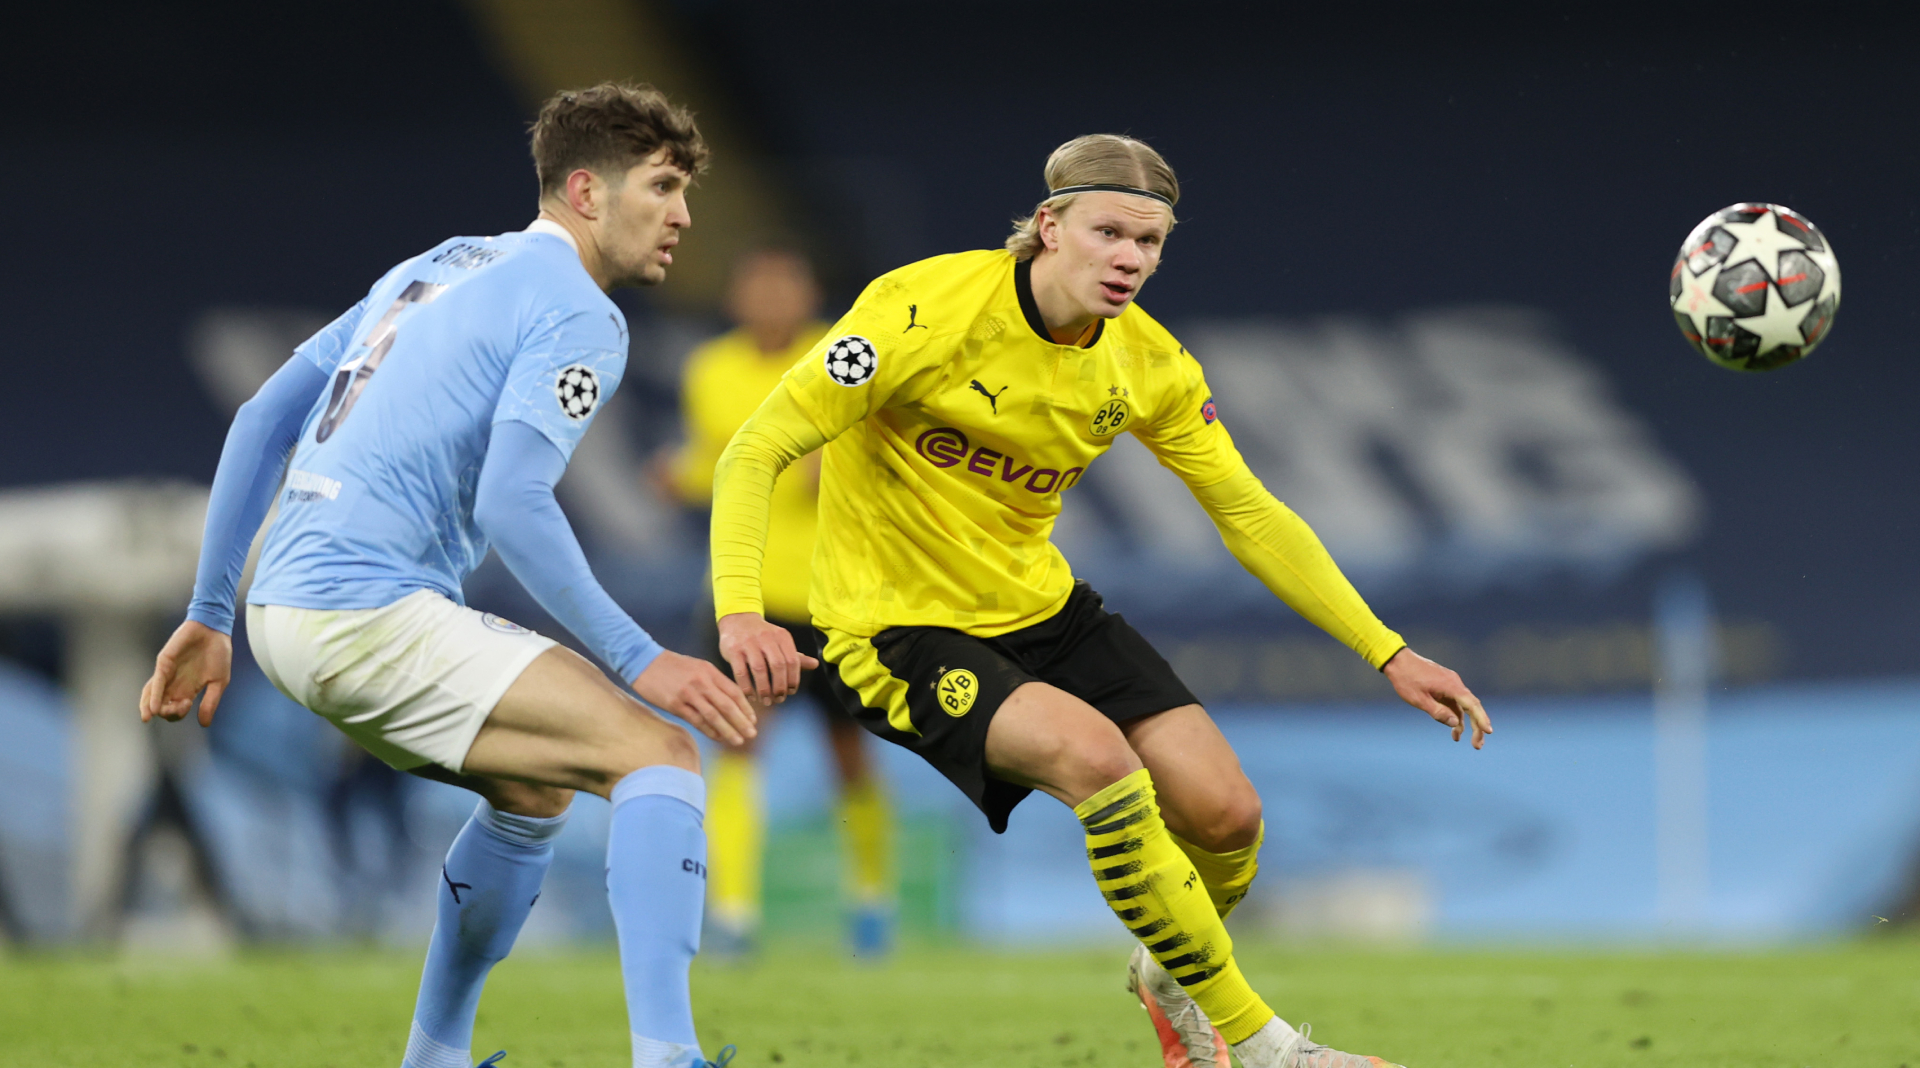 Haaland unaffected by rumours ahead of City clash as Terzic confirms Sancho won't face former club